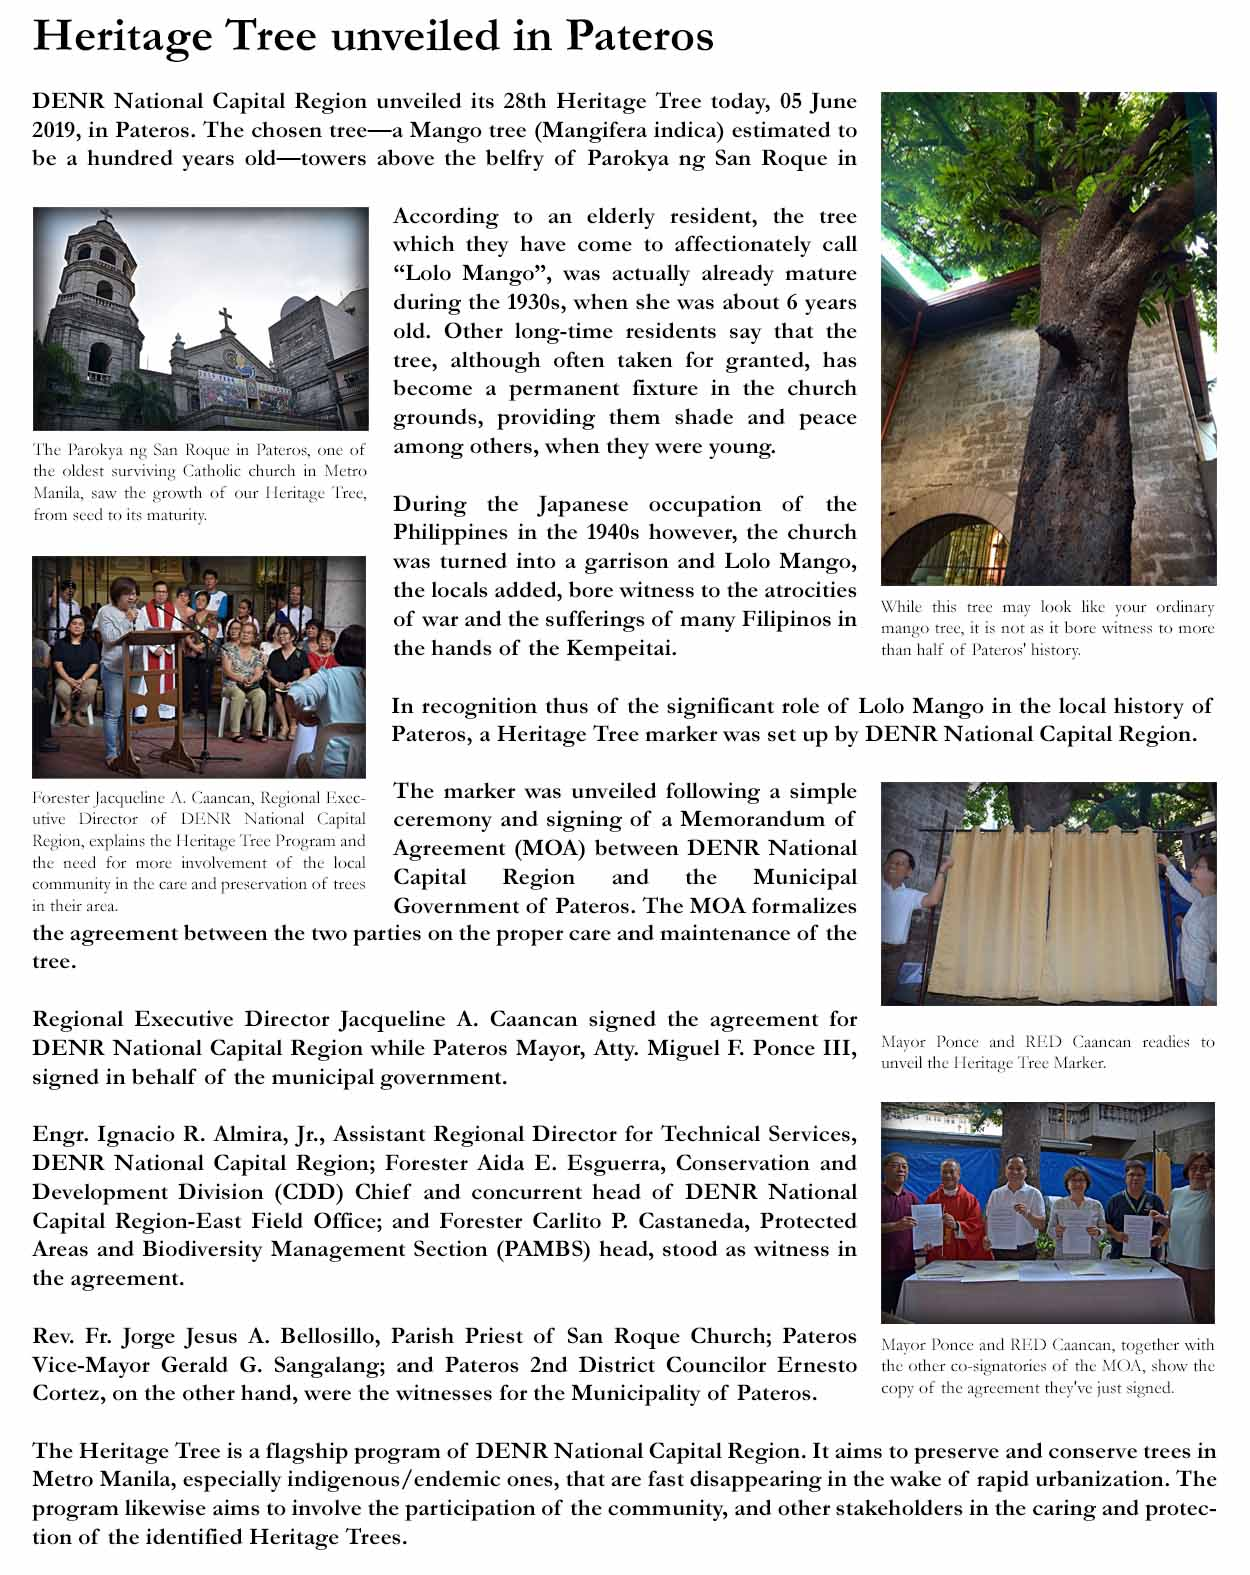 heritagetree pateros featured